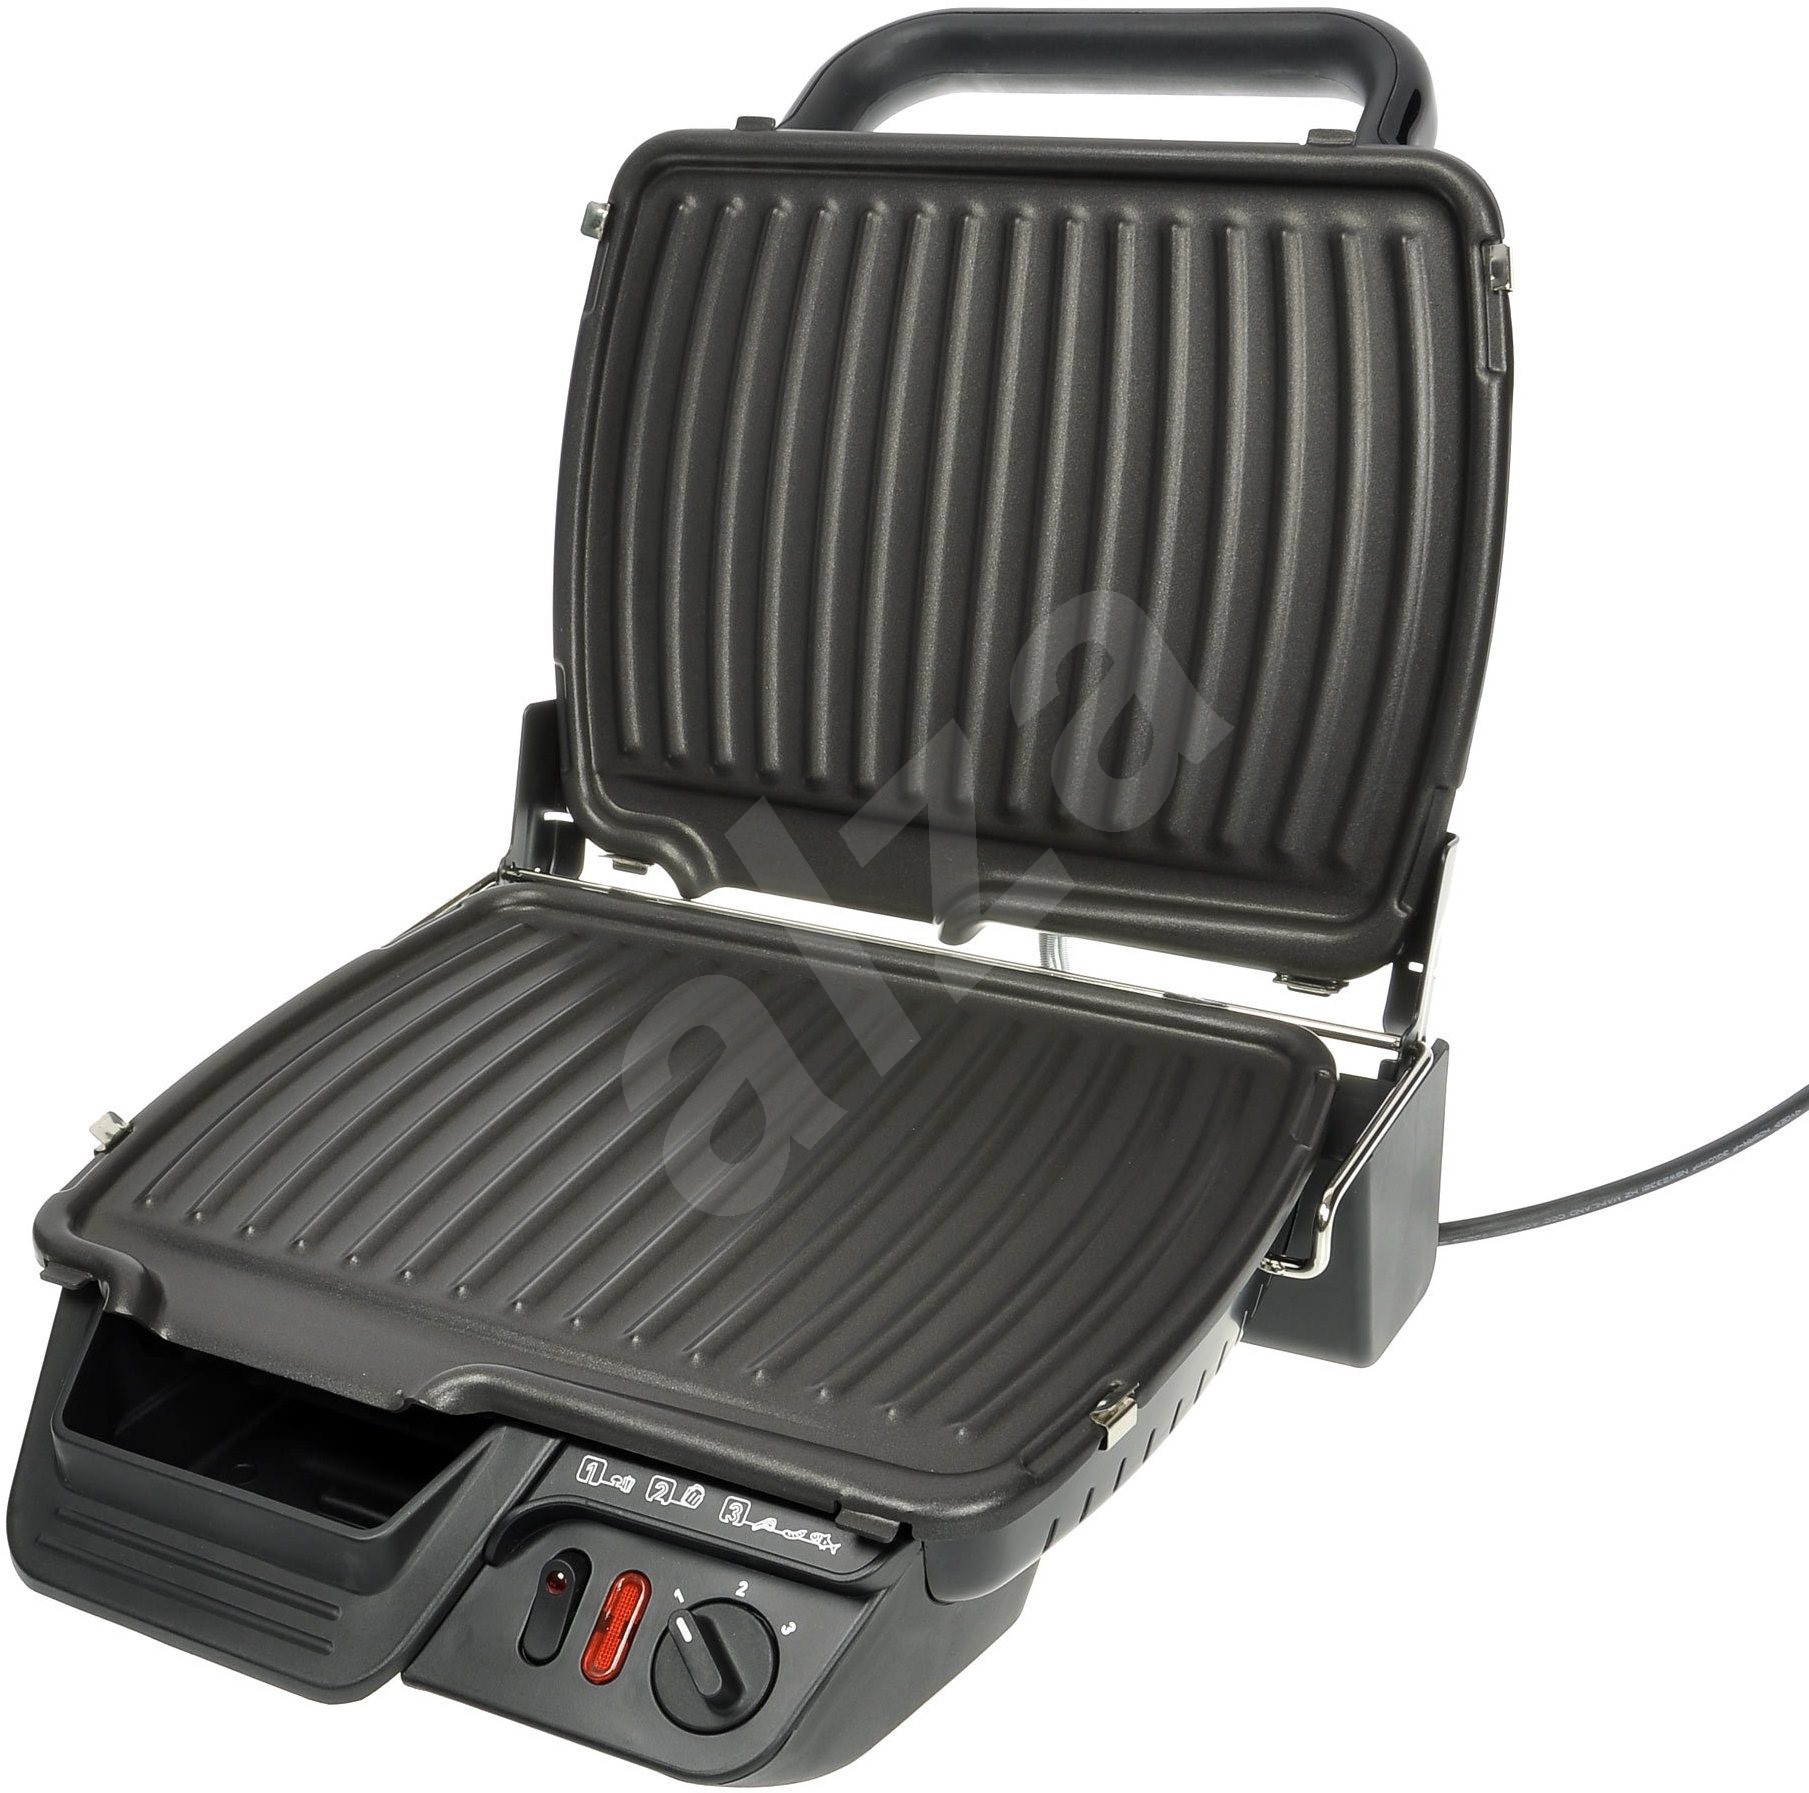 Tefal grill clasic uc600 electric grill - Barbecue tefal easy grill ...